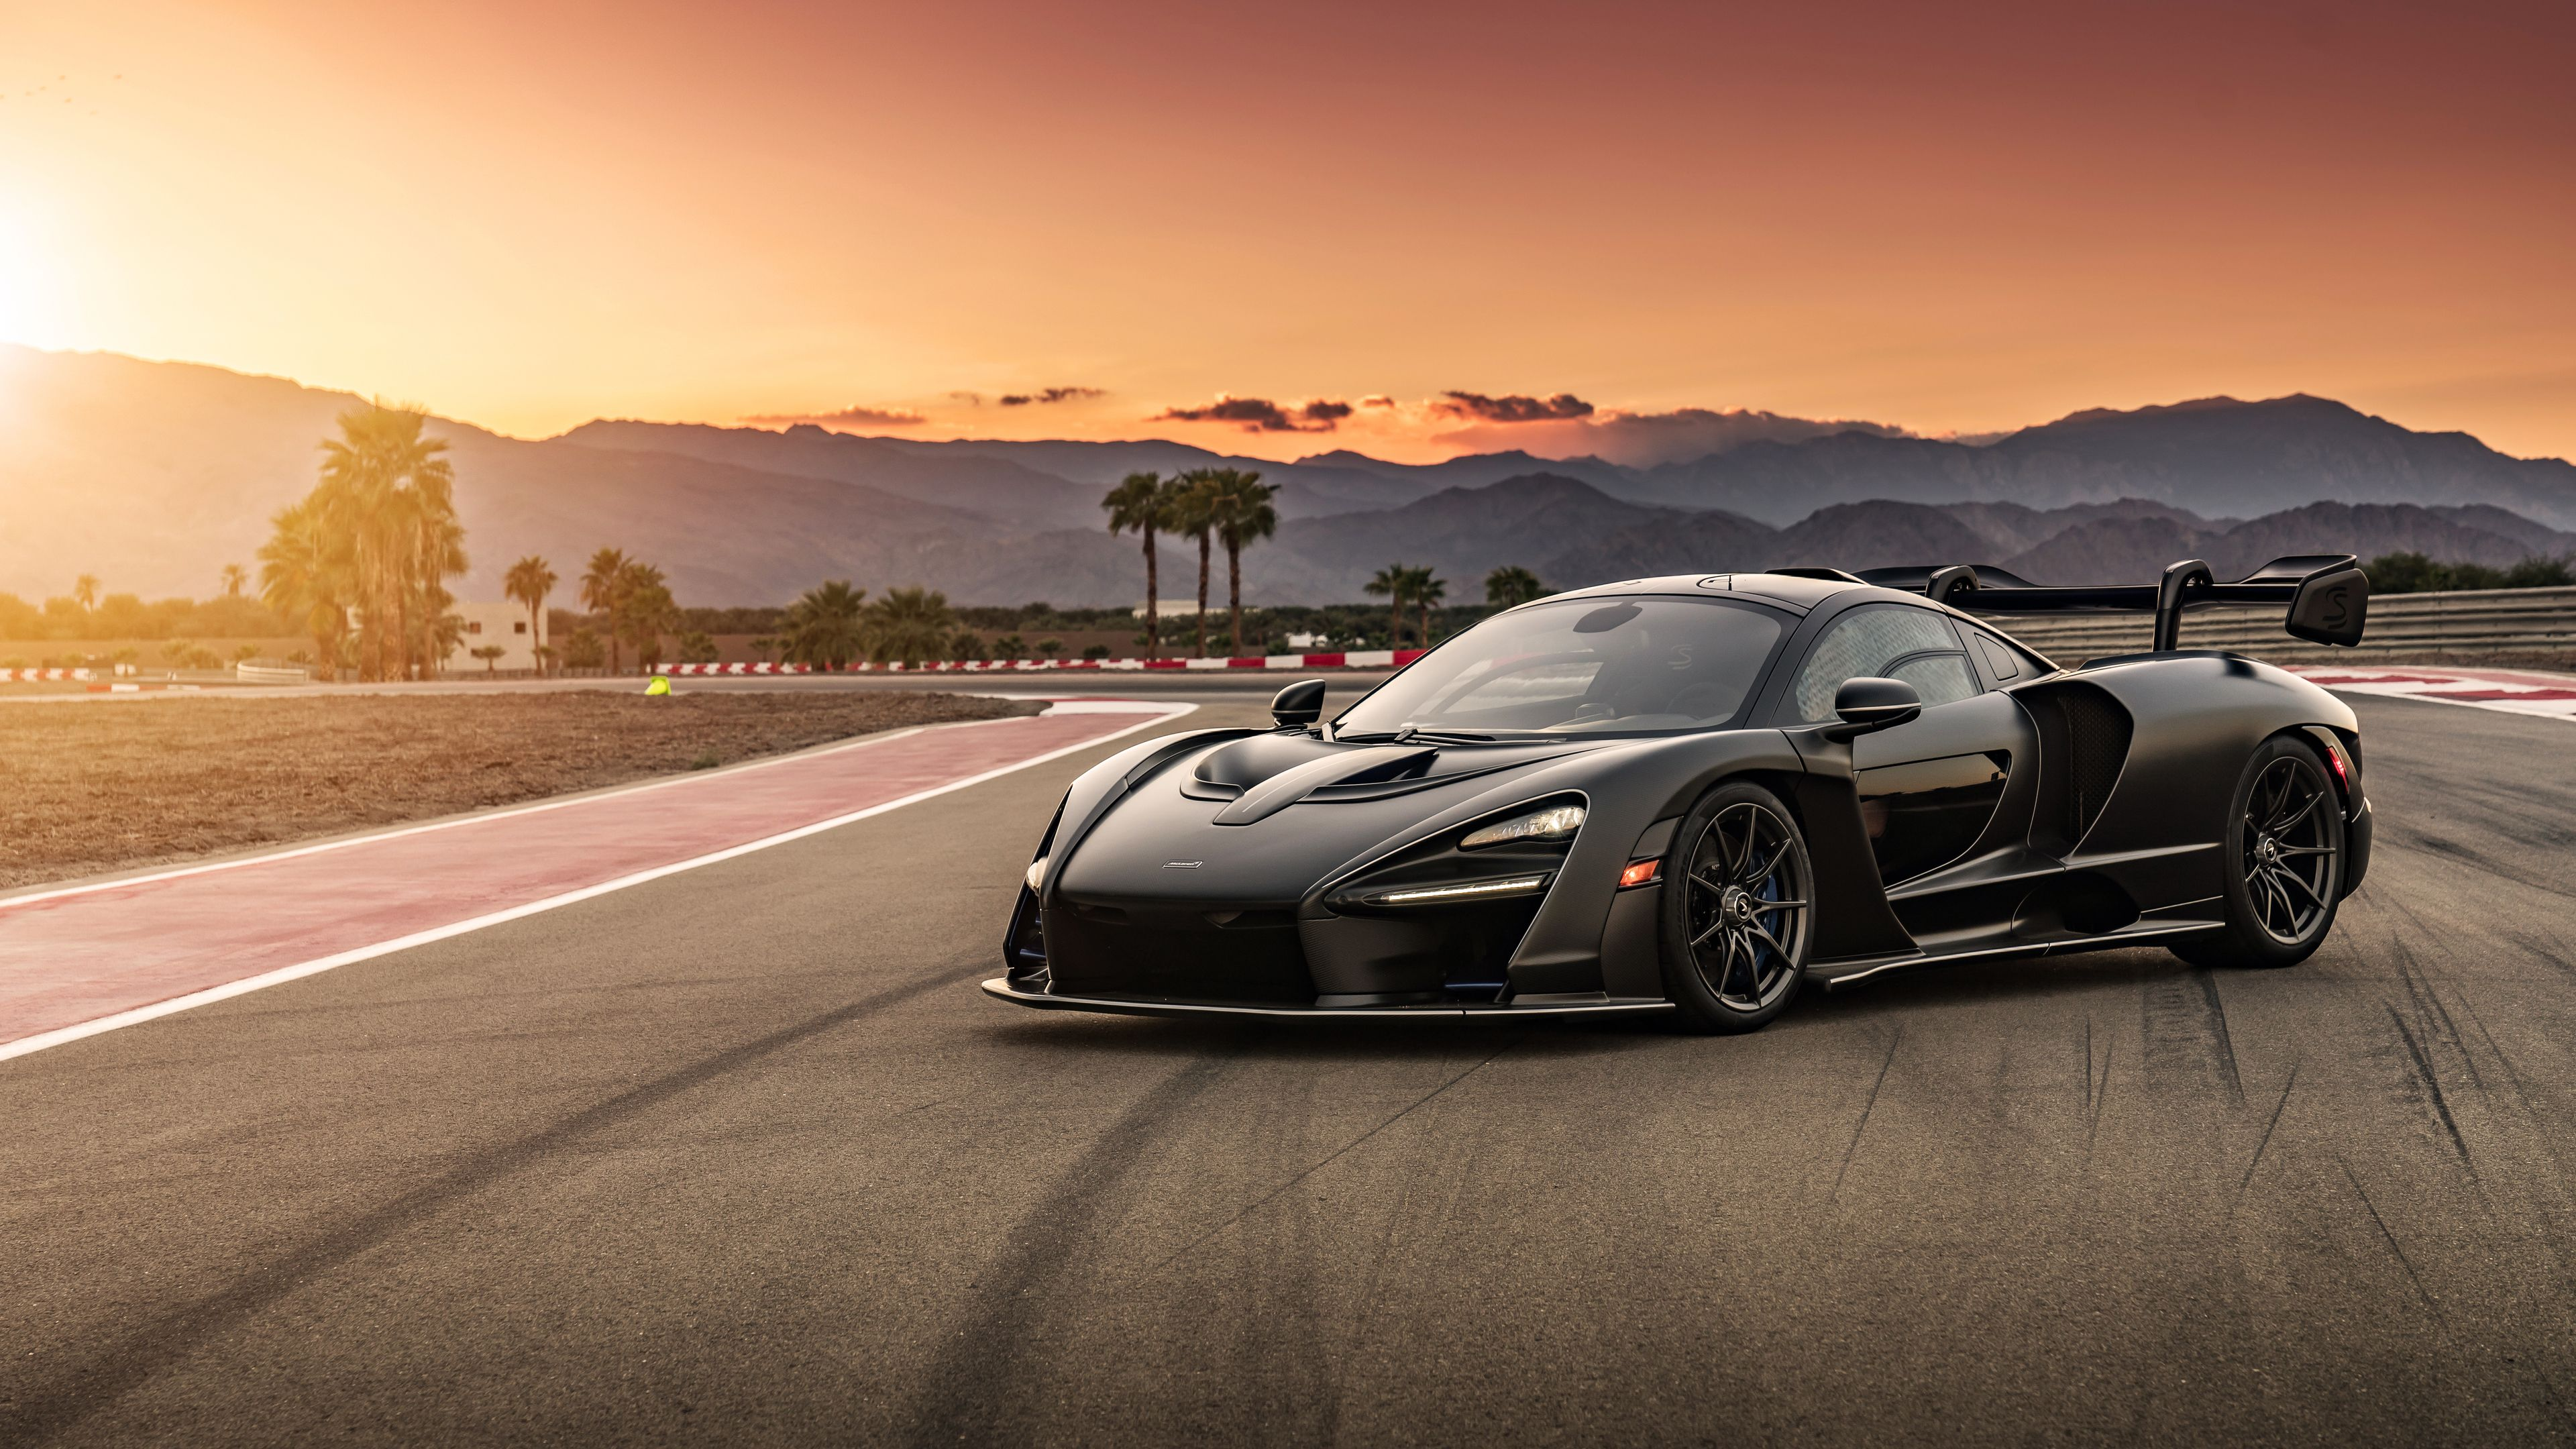 Wallpaper 4k Mclaren Senna 4k 2019 Cars Wallpapers 4k Wallpapers 5k Wallpapers 8k Wallpapers Cars Wallpapers Hd Wallpapers Mclaren Senna Wallpapers Mclar